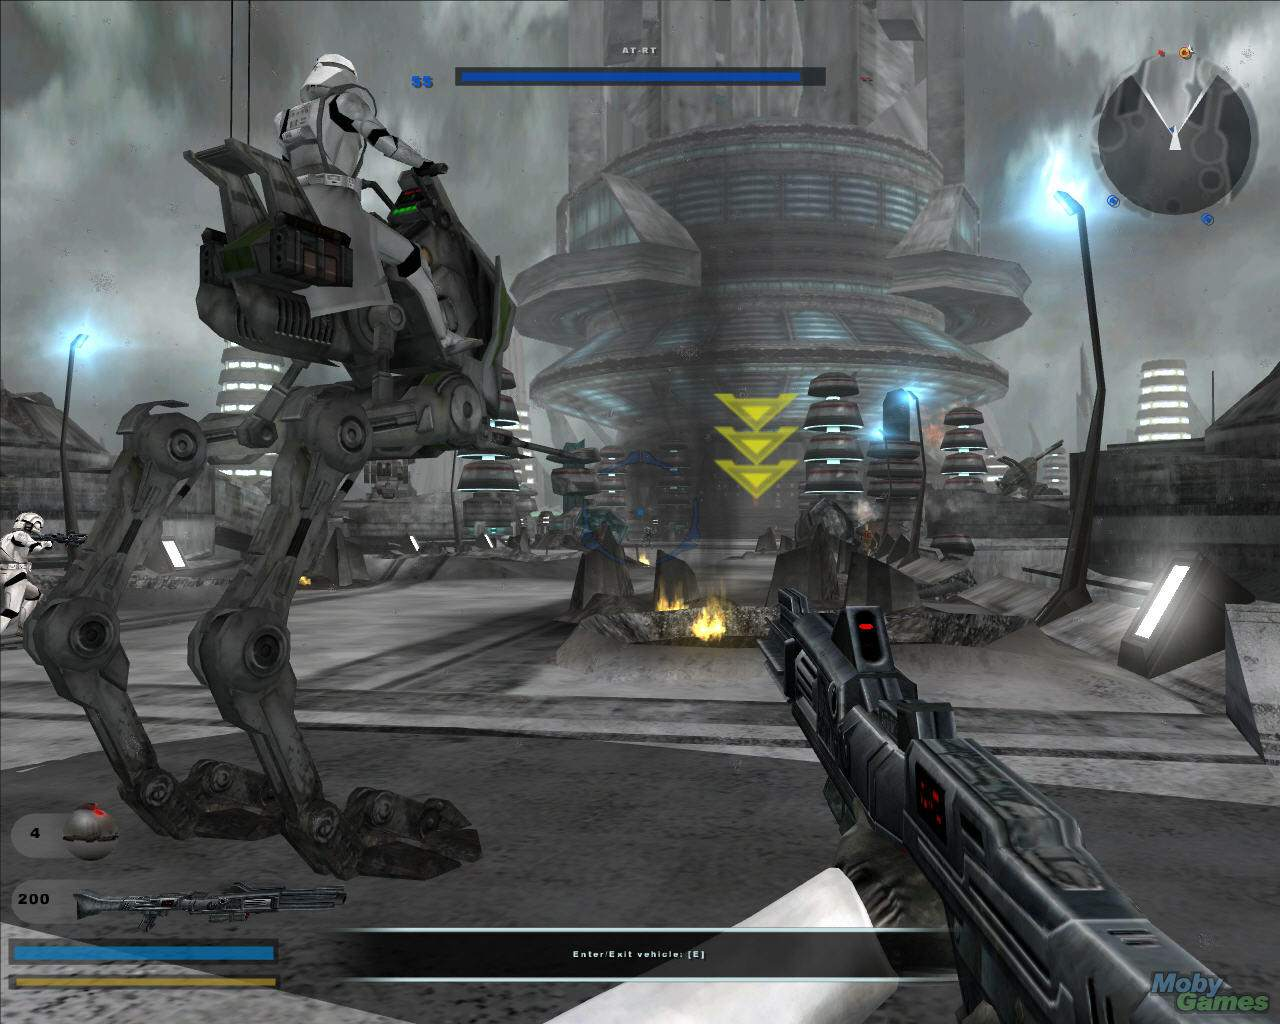 Best Star Wars Video Games of All Time